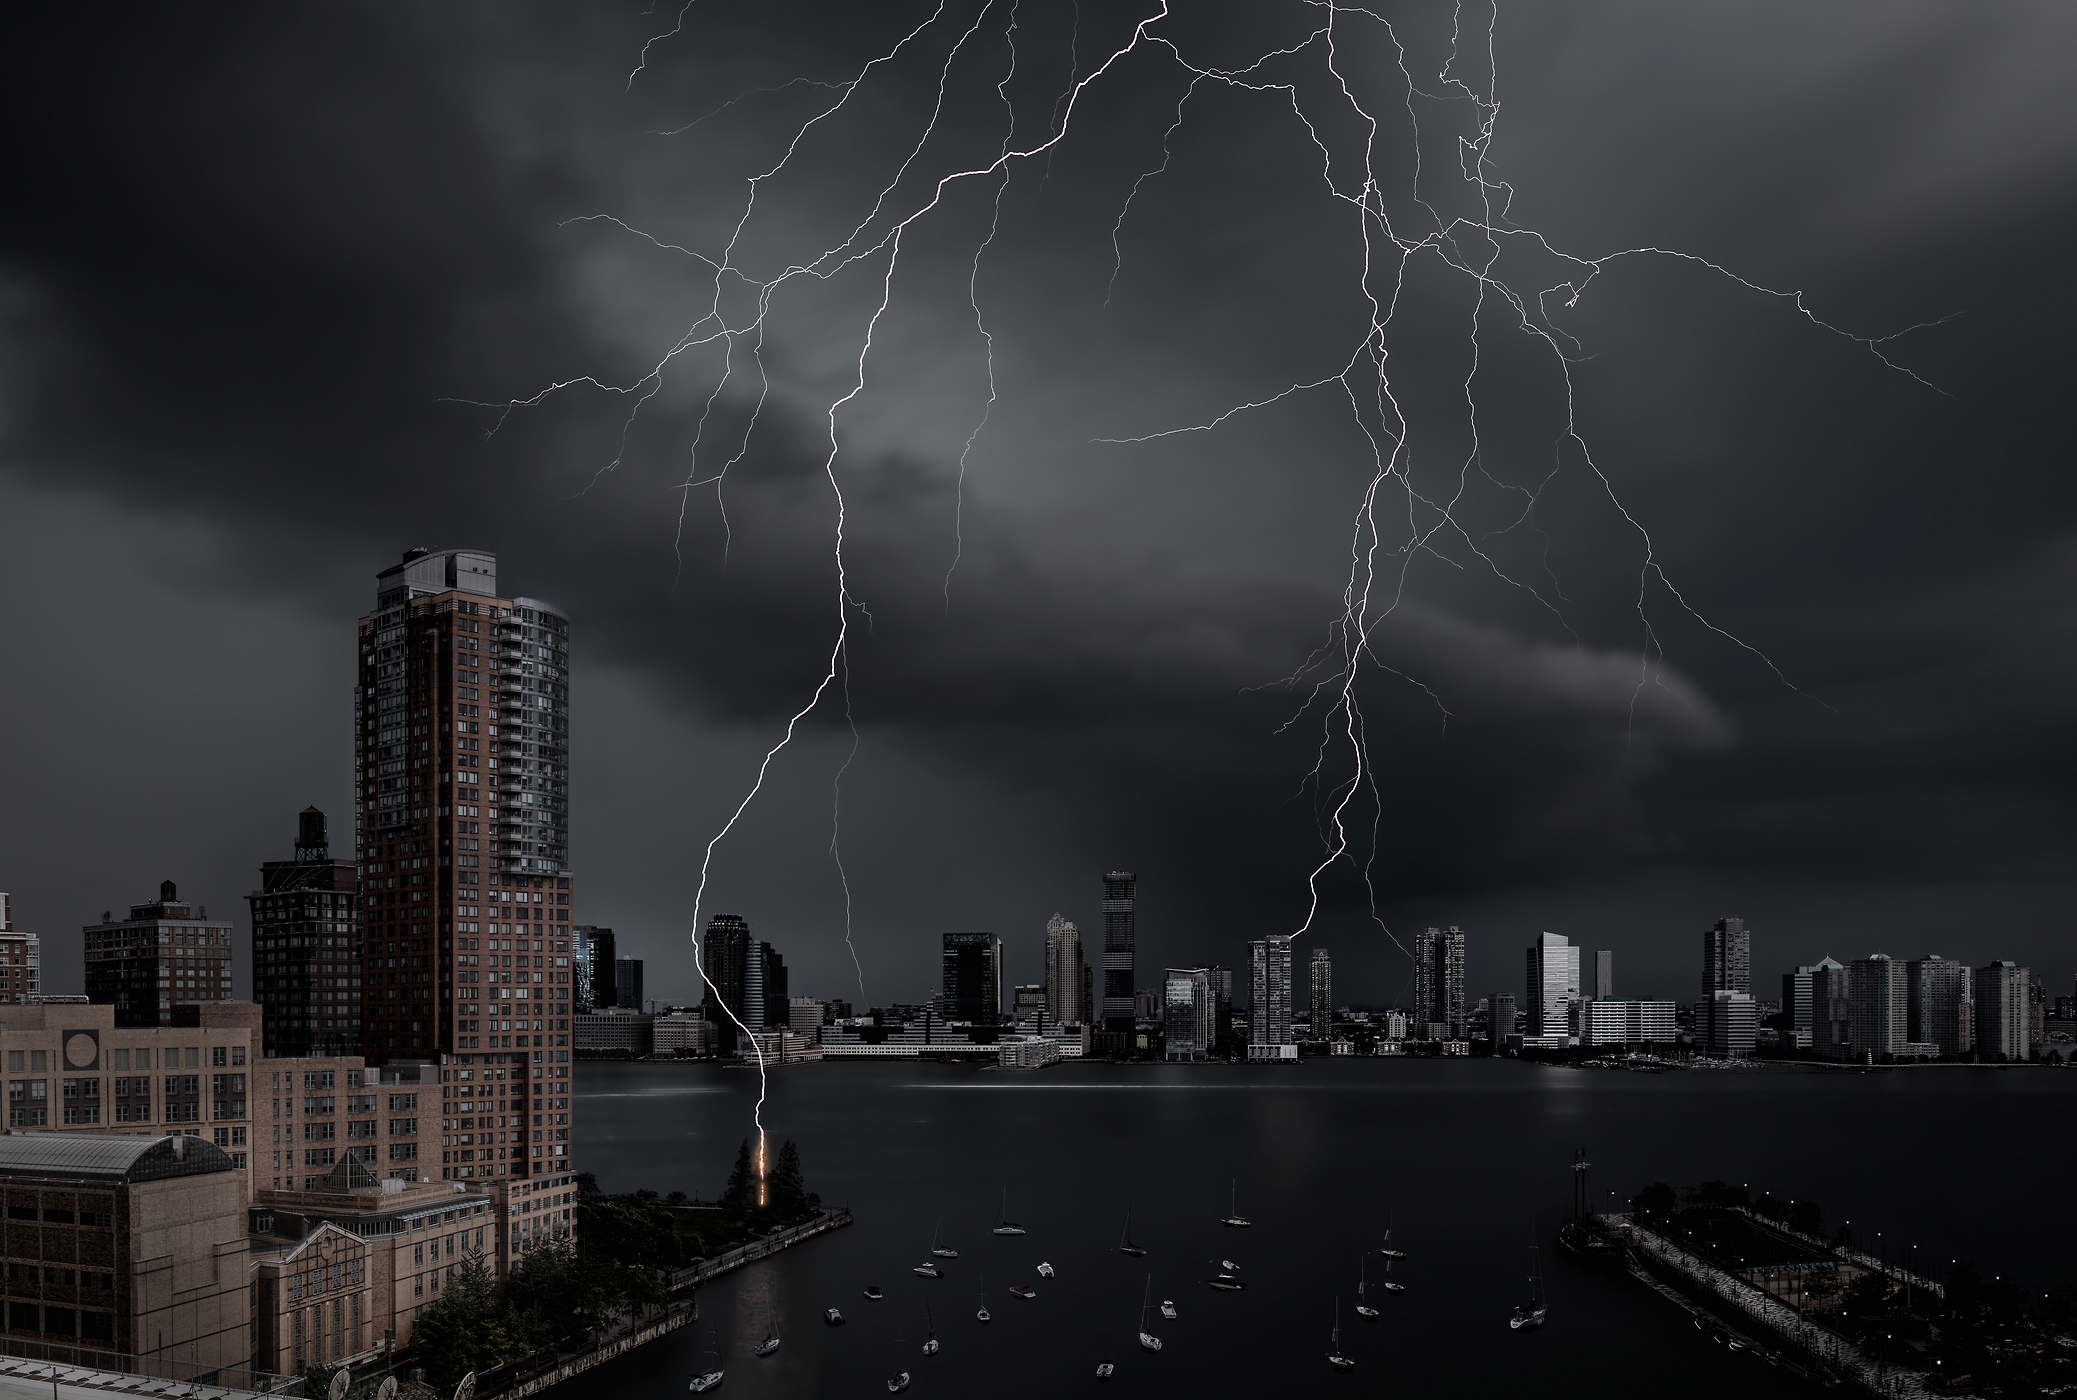 The highest definition VAST photo of a lightning bolt strike from a thunderstorm over the Hudson River and Tribeca Pointe in the Battery Park City neighborhood of New York City; created by Dan Piech